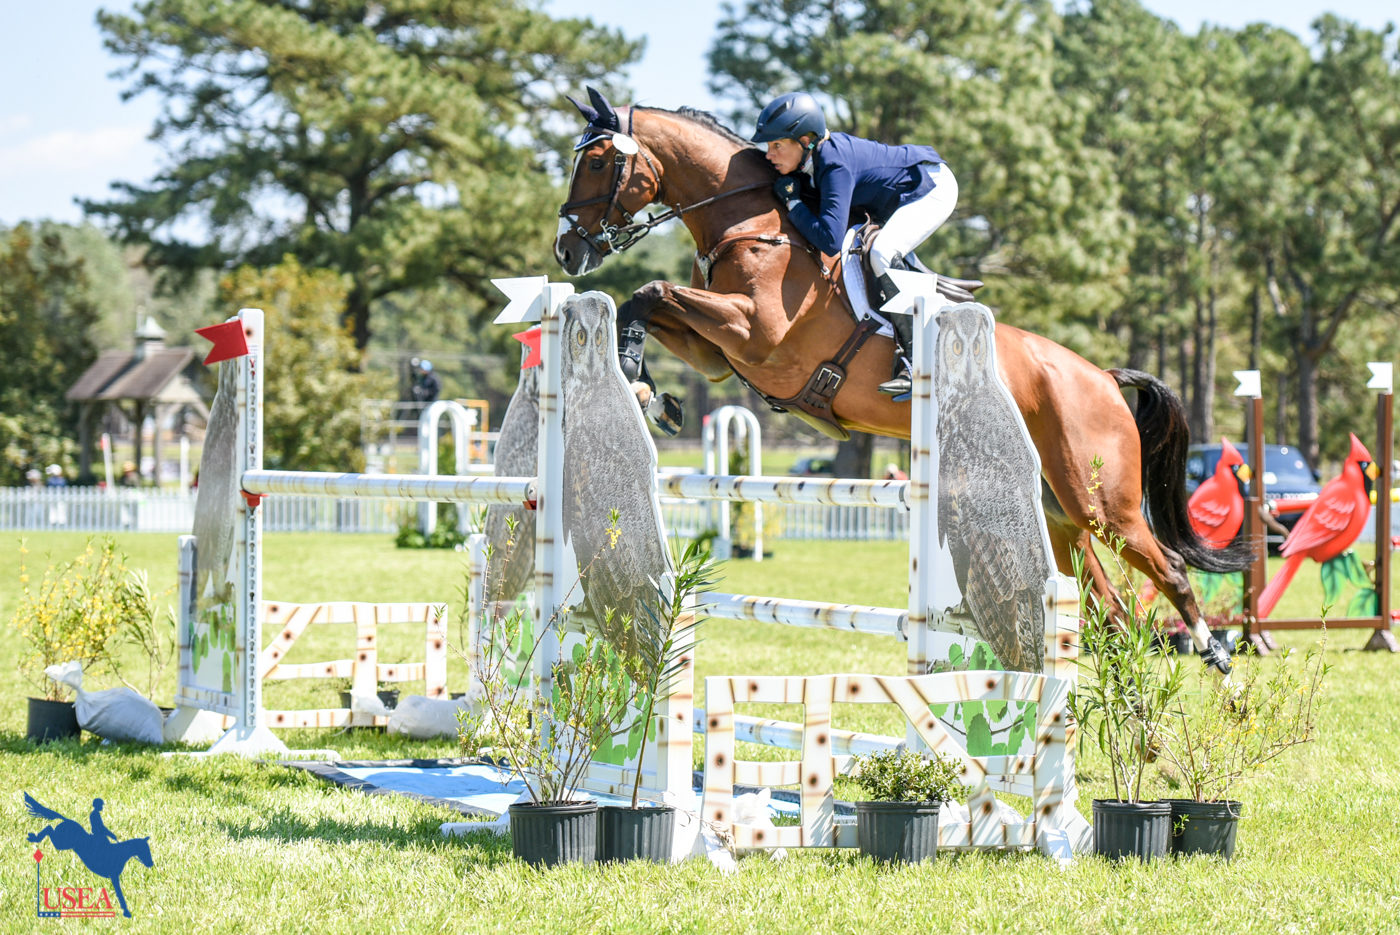 4* - 2nd - Liz Halliday-Sharp and Deniro Z